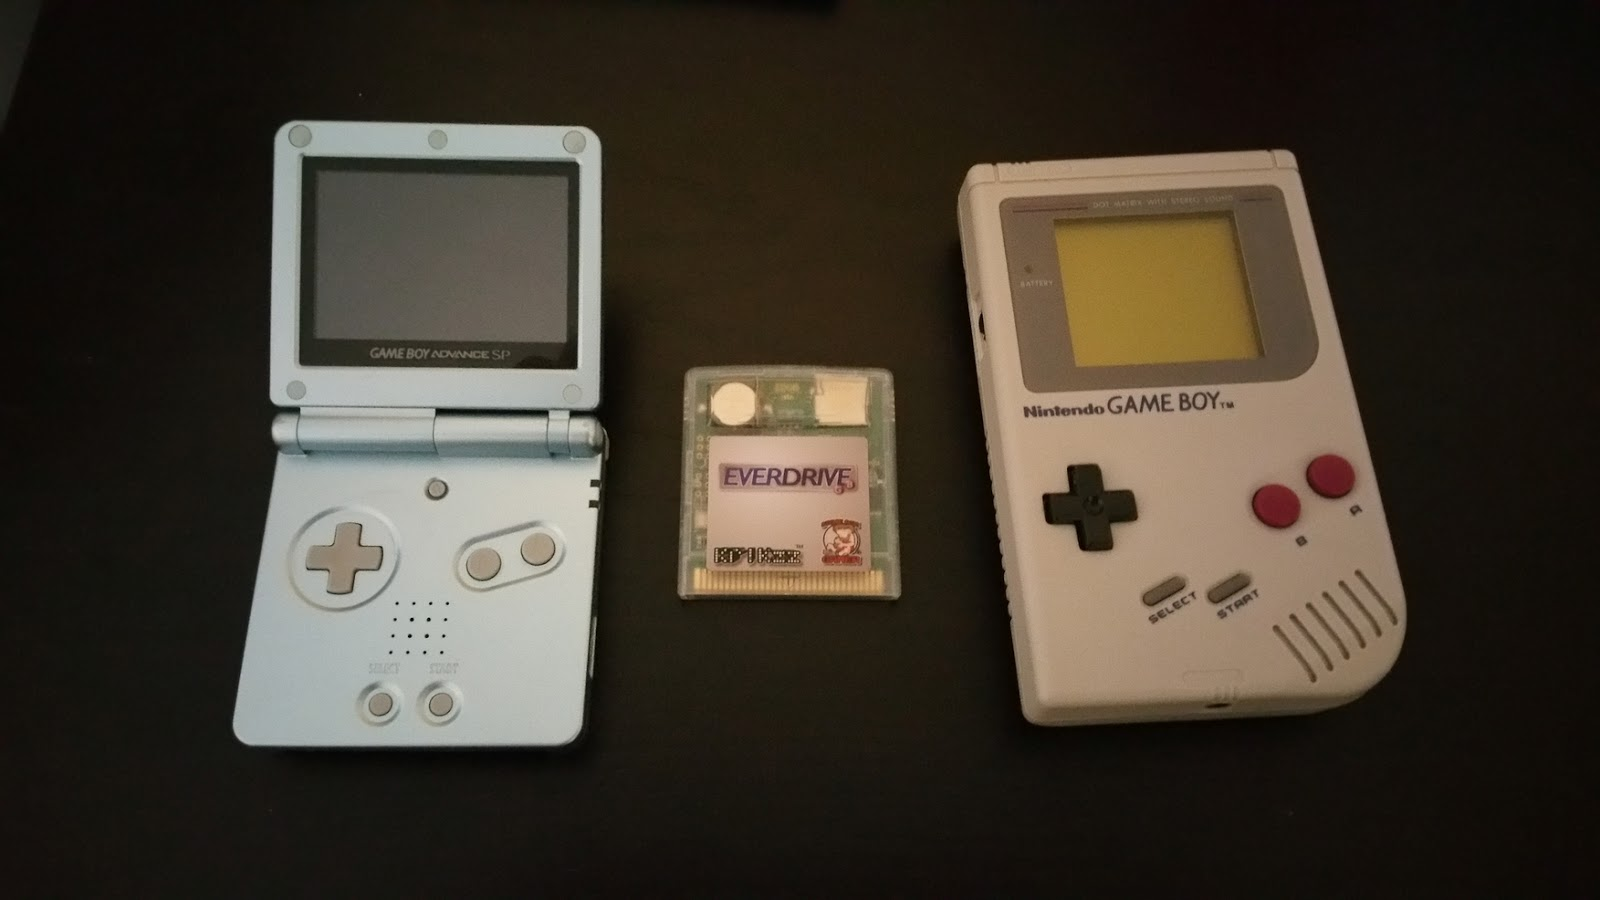 Gameboy color and advance rpg games - The Everdrive Gb Is A Flash Cart That Supports Game Boy And Game Boy Color Roms It Is Extremely Important For Two Reasons